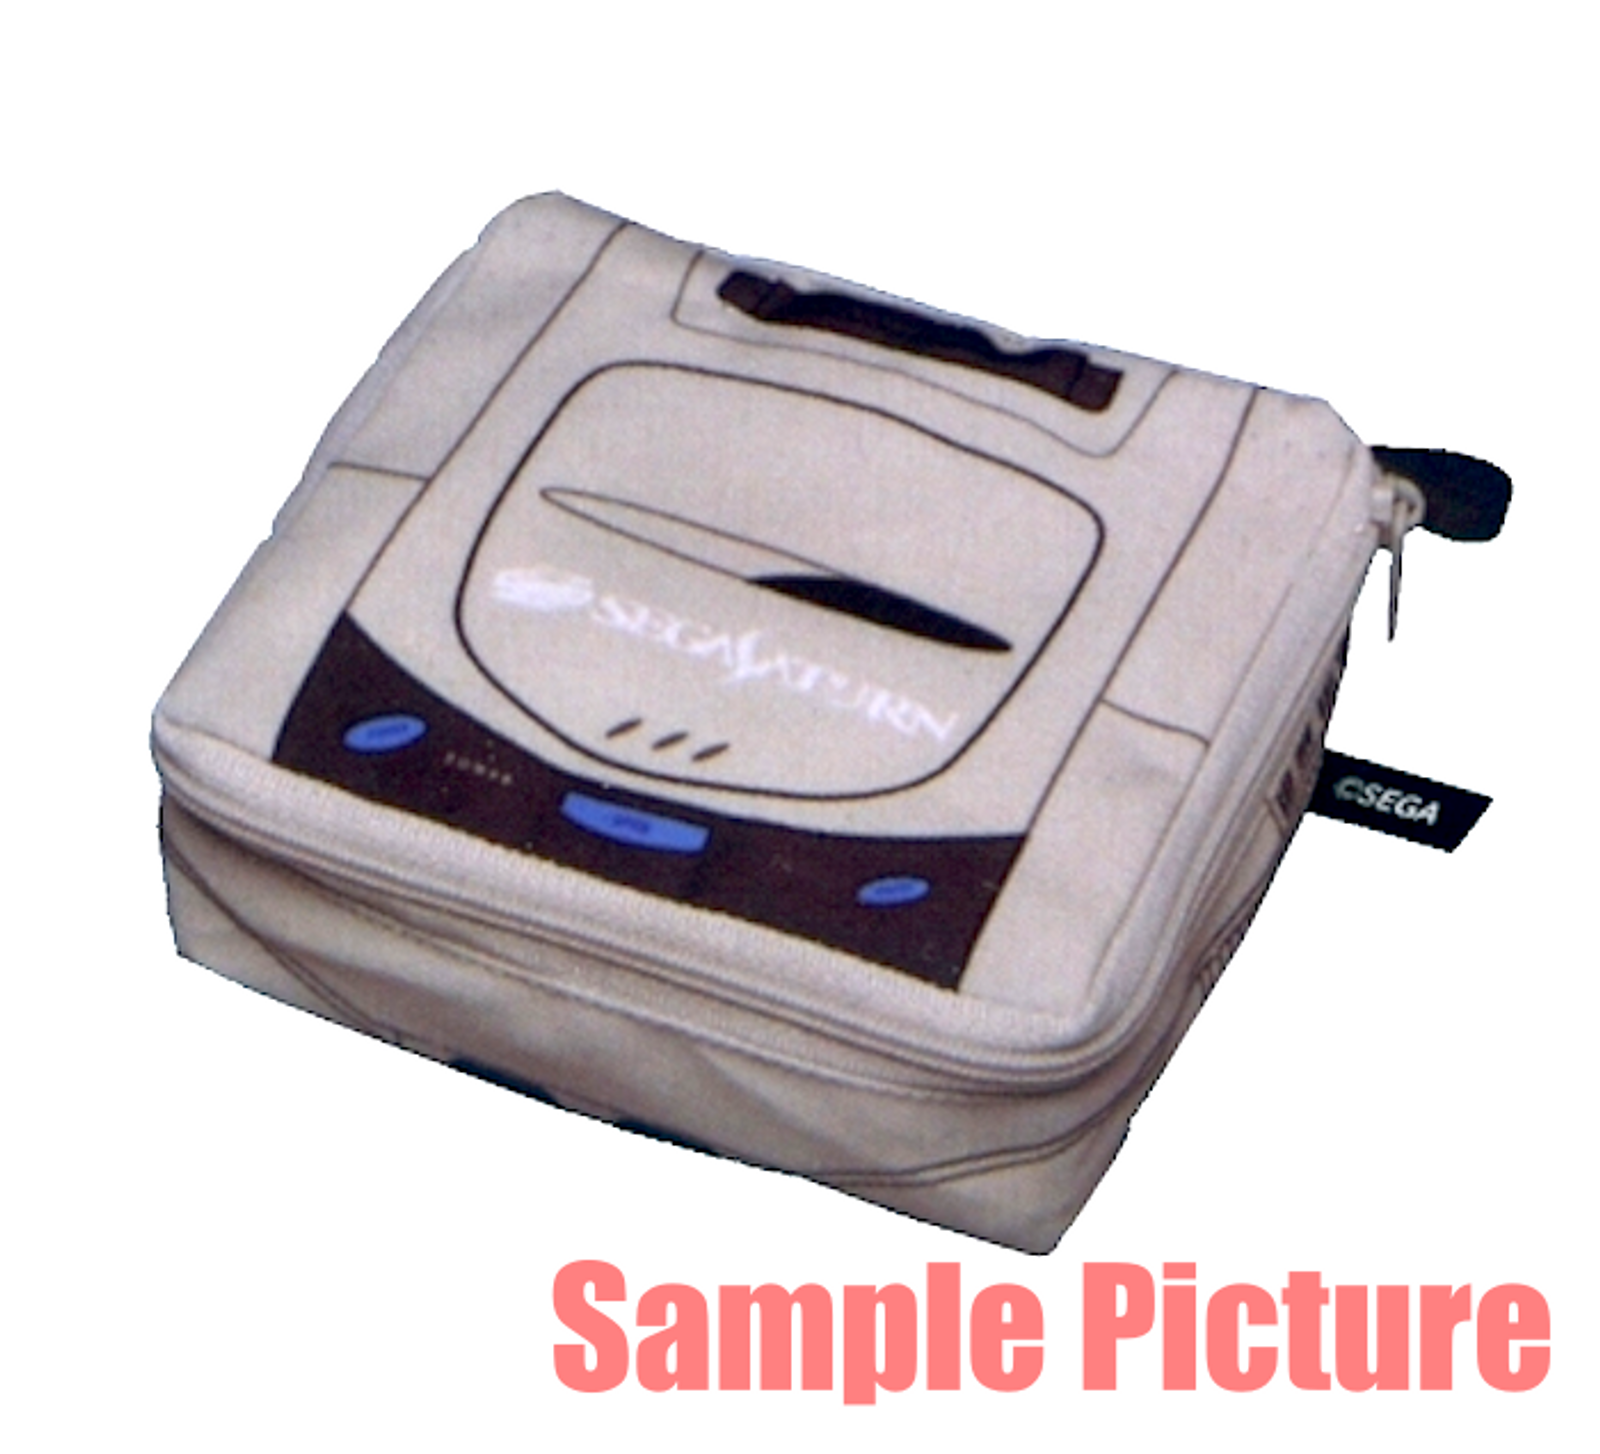 Sega Saturn SEGA Game Console Machine Type Pouch Case JAPAN GAME